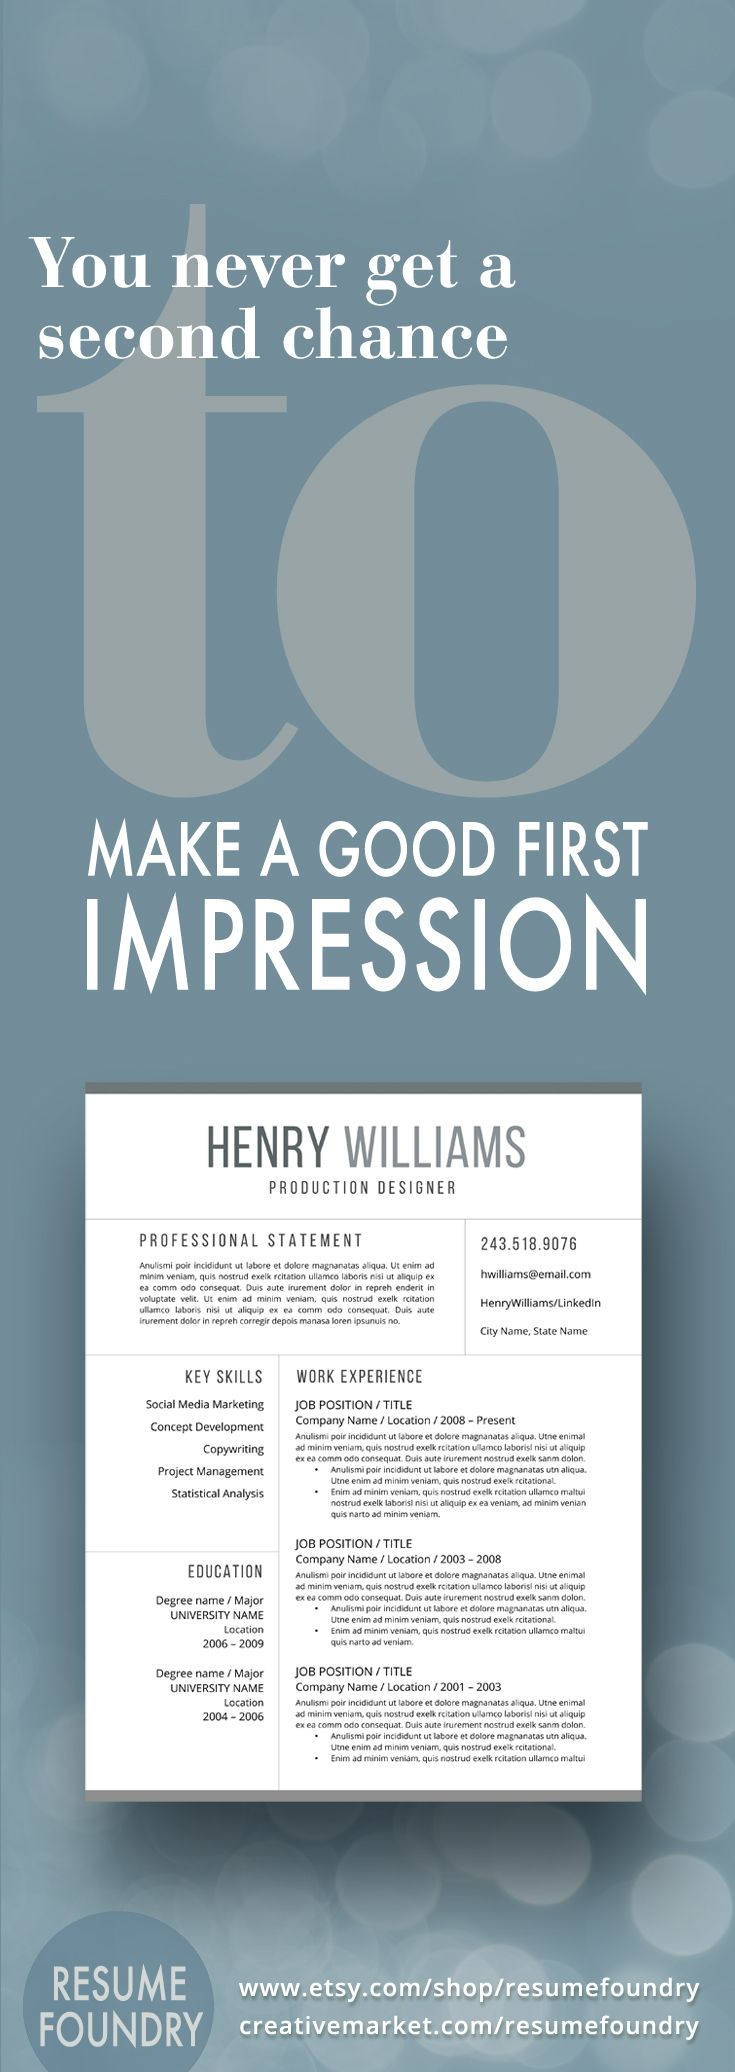 206 best images about resume on pinterest professional resume